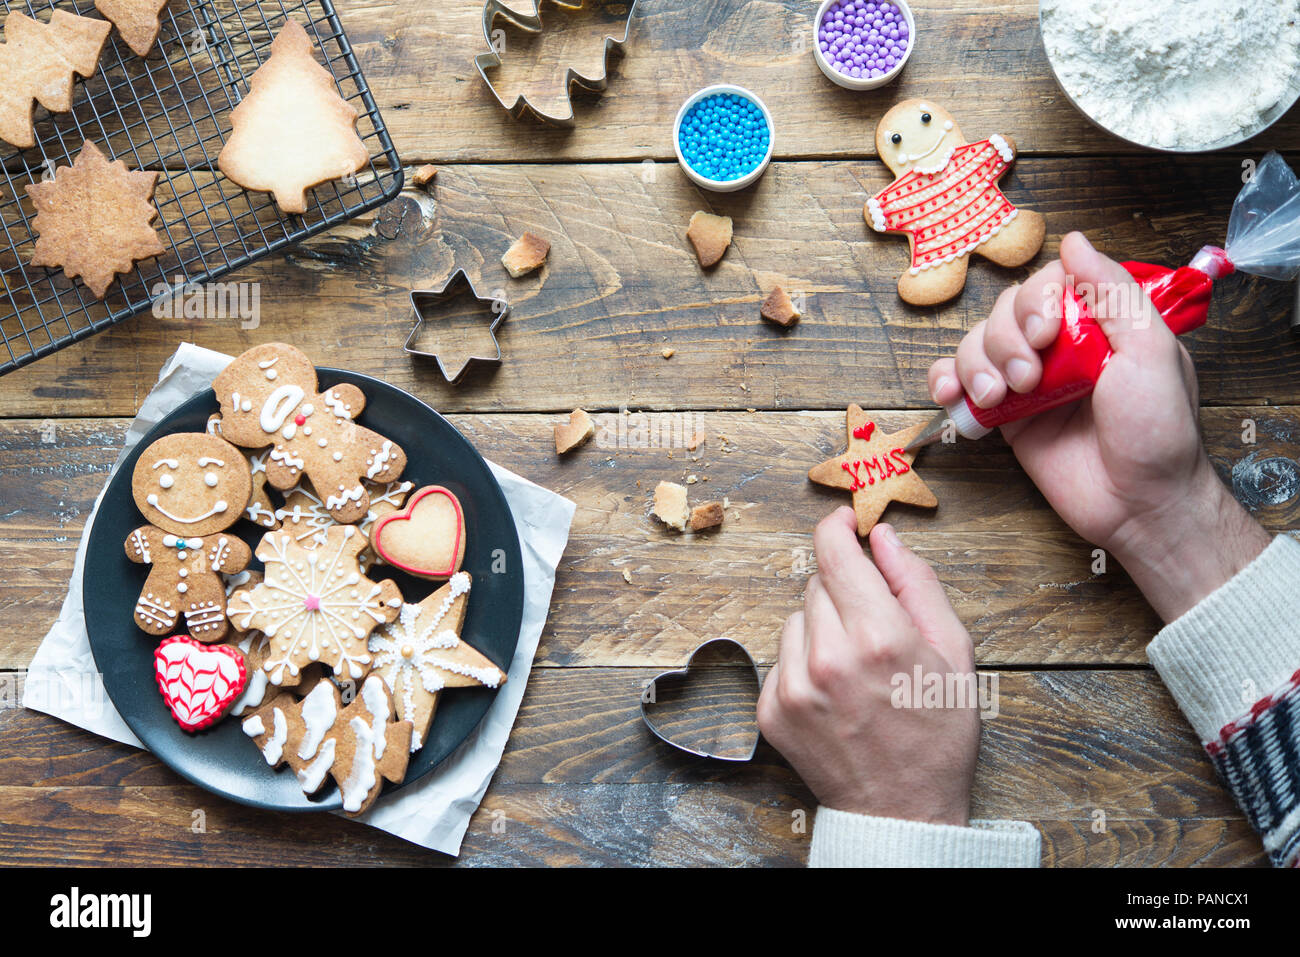 Man's hand decorating Christmas cookie - Stock Image